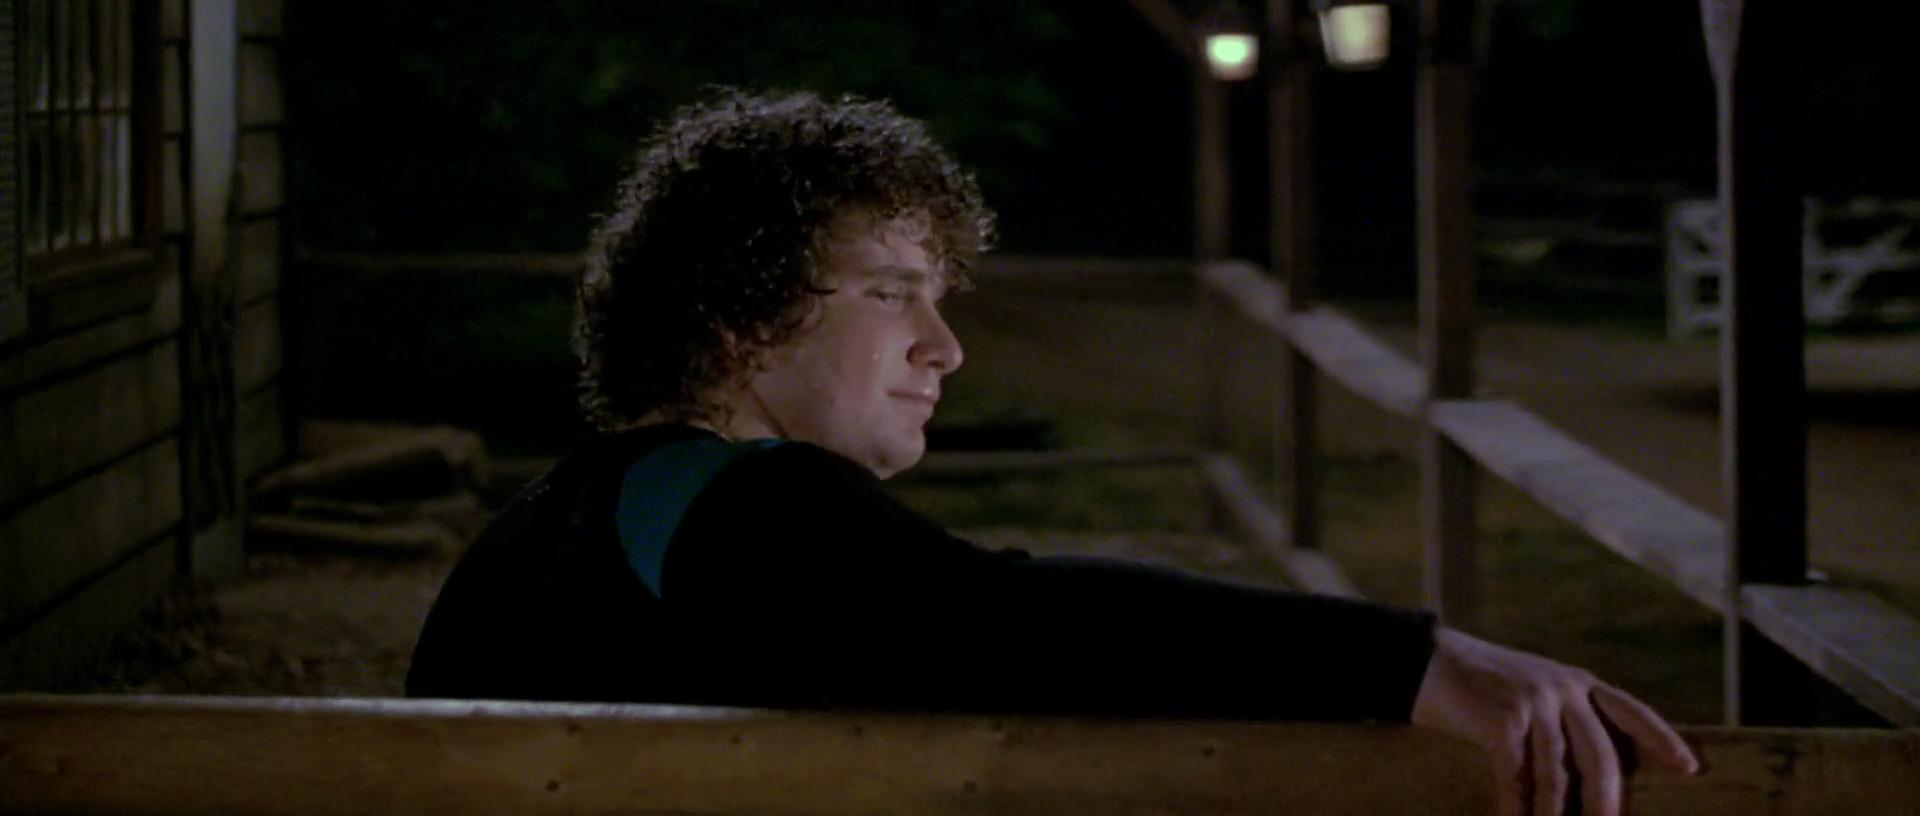 Larry Zerner in Friday the 13th Part III (1982)